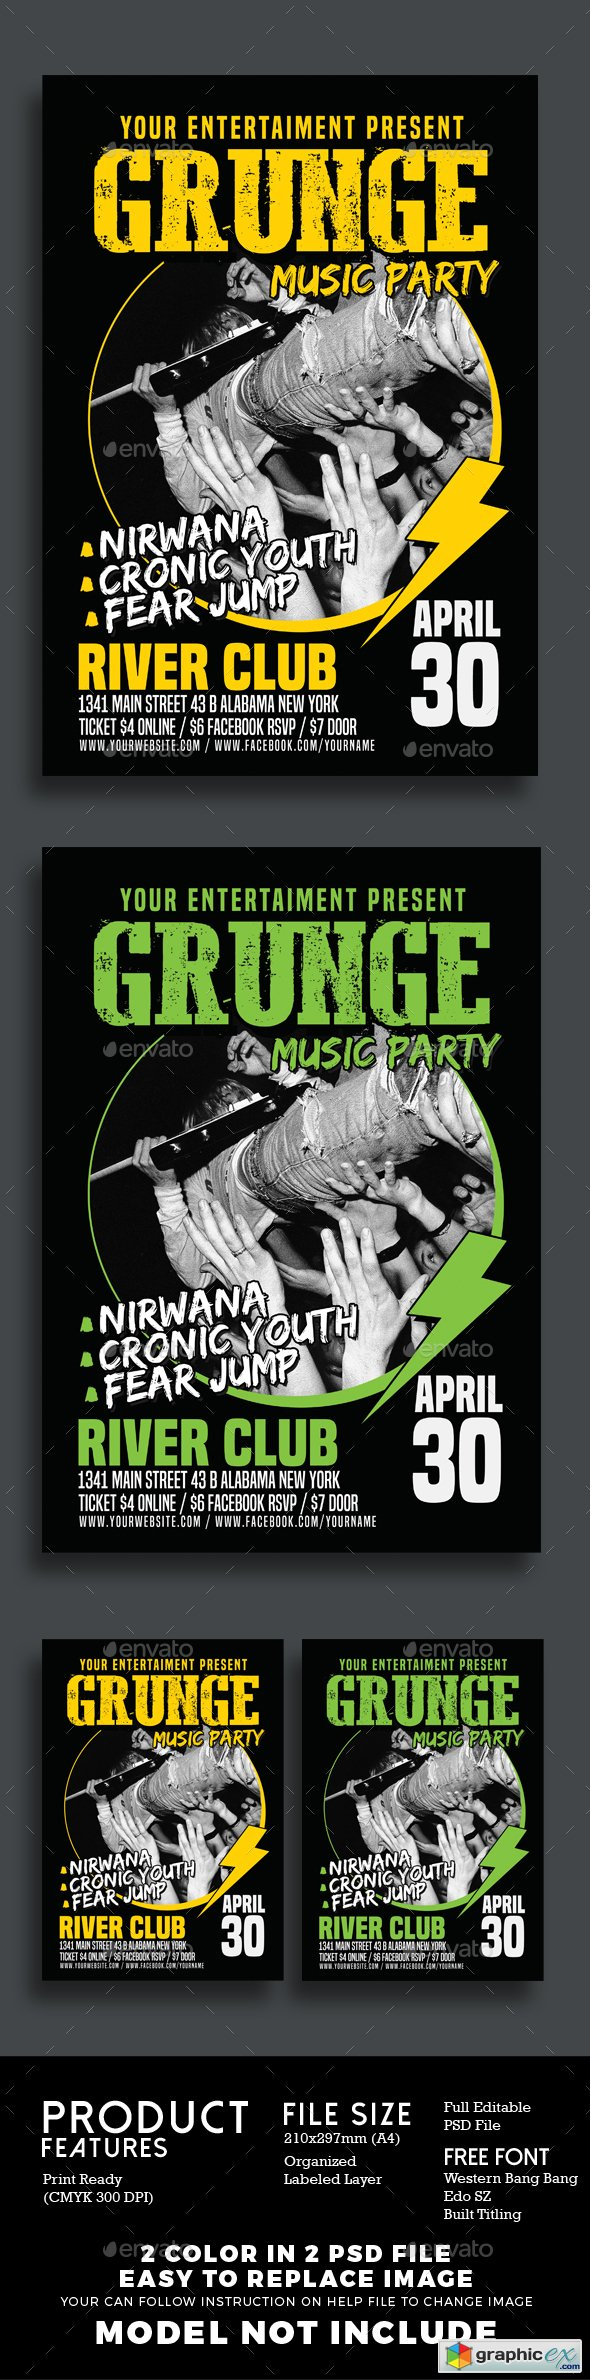 Grunge Music Party Poster Flyer